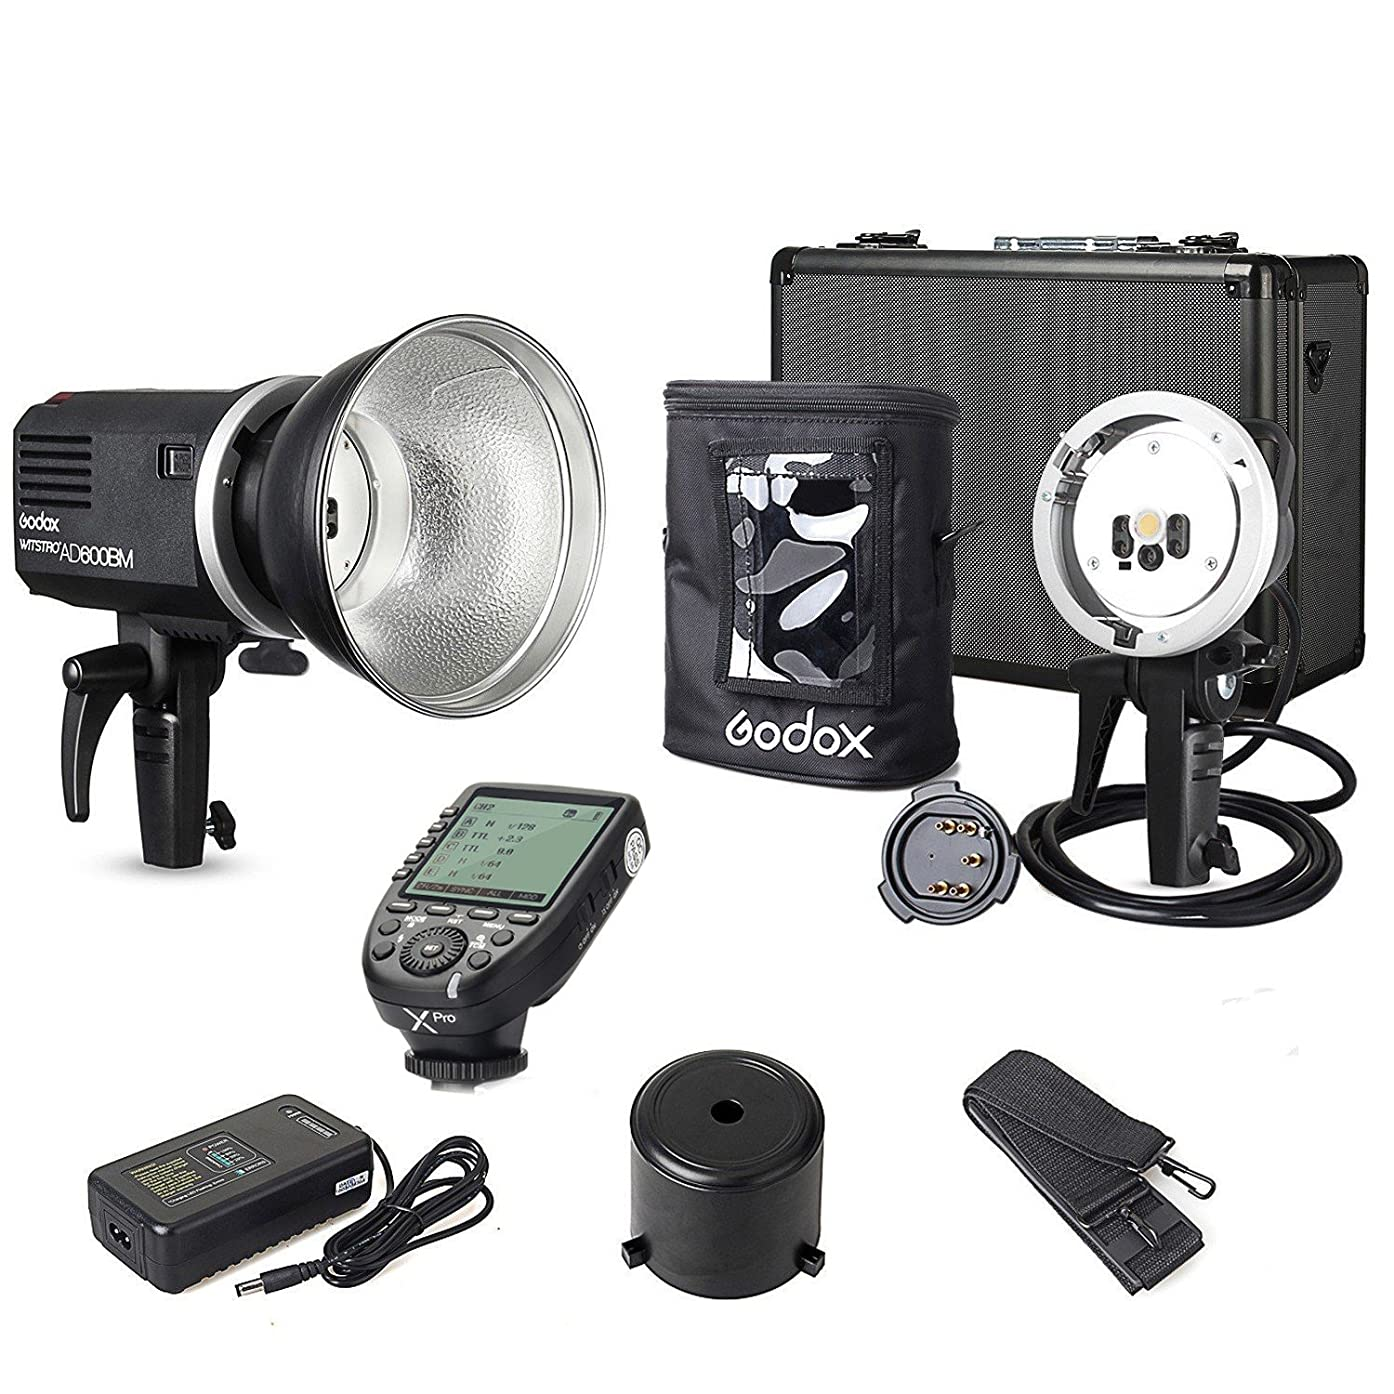 EACHSHOT Godox AD600BM Canon Kit {Including XPro-C Transmitter, AD-H600B Mount, AD-R6 Reflector, PB-600 Bag} 1/8000s Non-TTL Manual 600W Outdoor Flash Light Bowens Mount for Canon